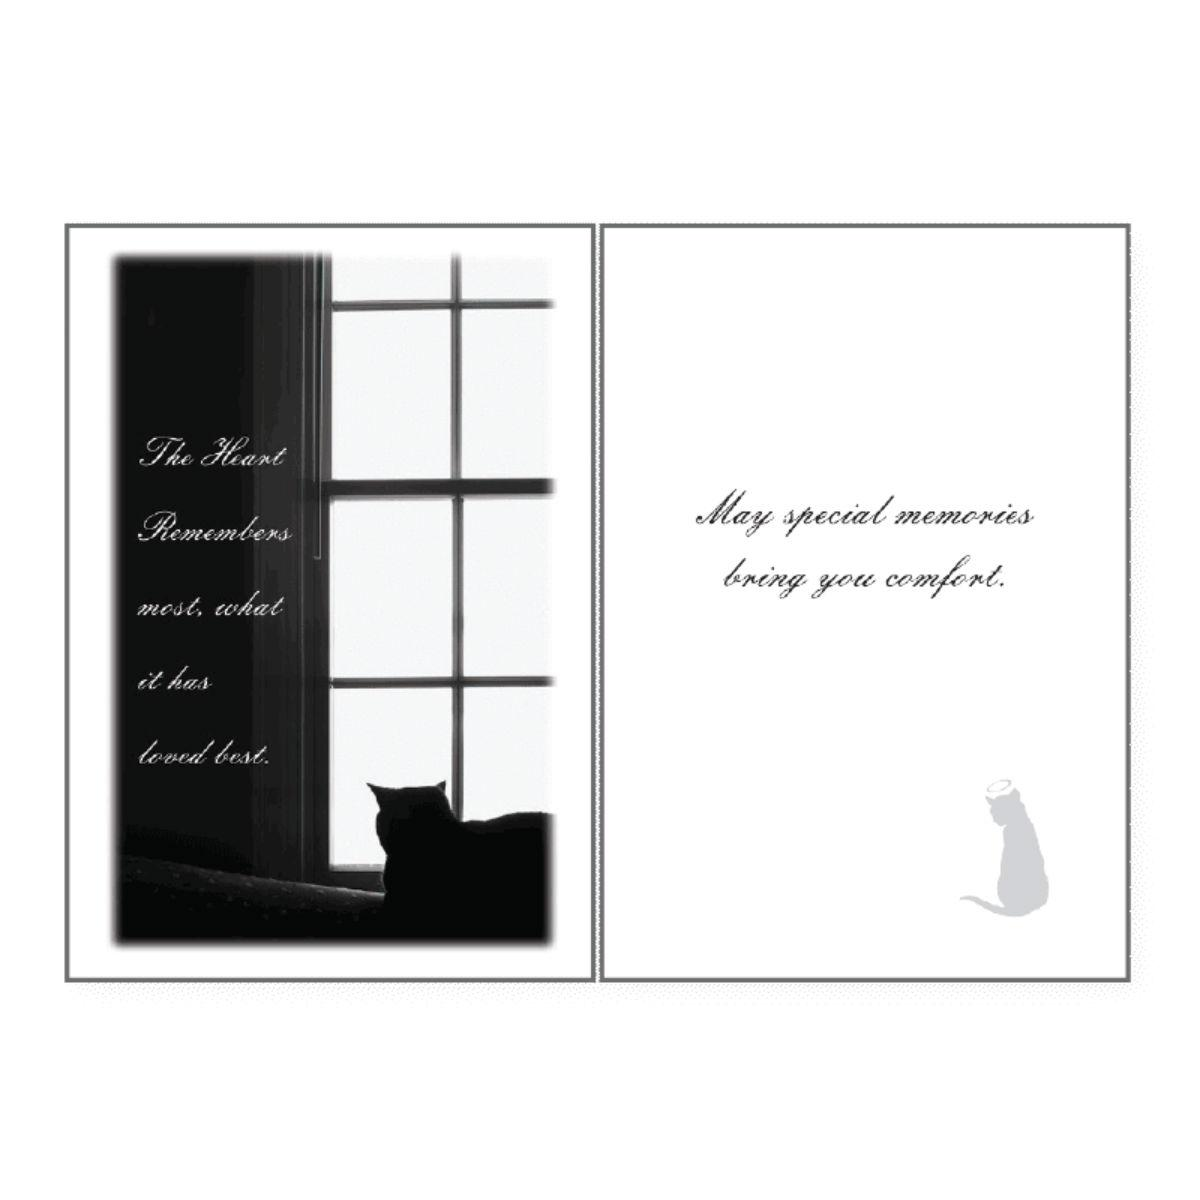 Sympathy Greeting Card by Dog Speak - The Heart Remembers